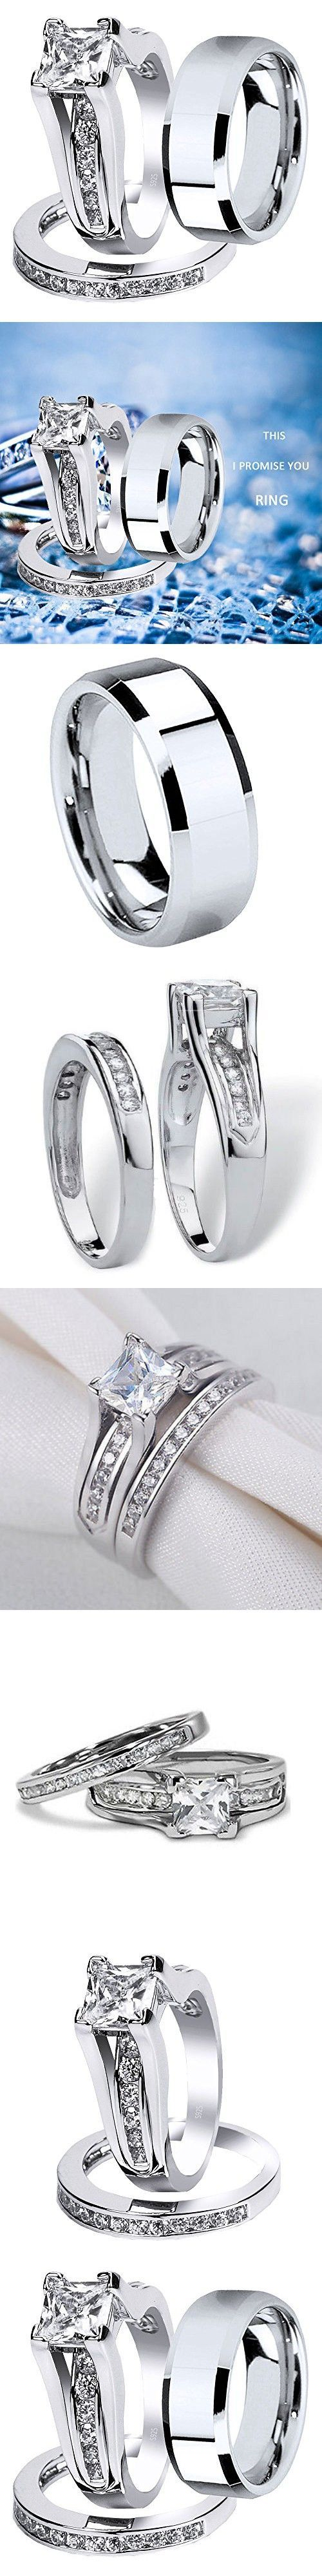 best 25 silver wedding bands ideas on pinterest silver band